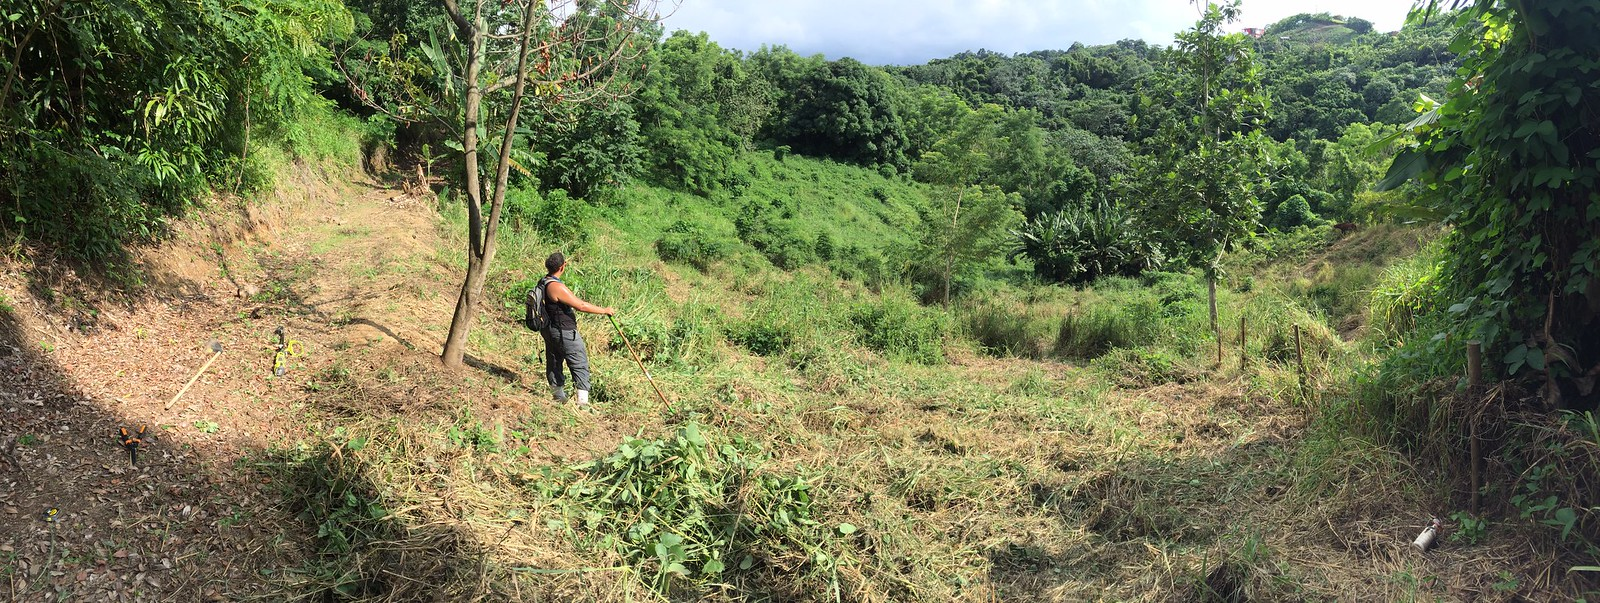 Jungle Clearing and Puerto Rican-isms